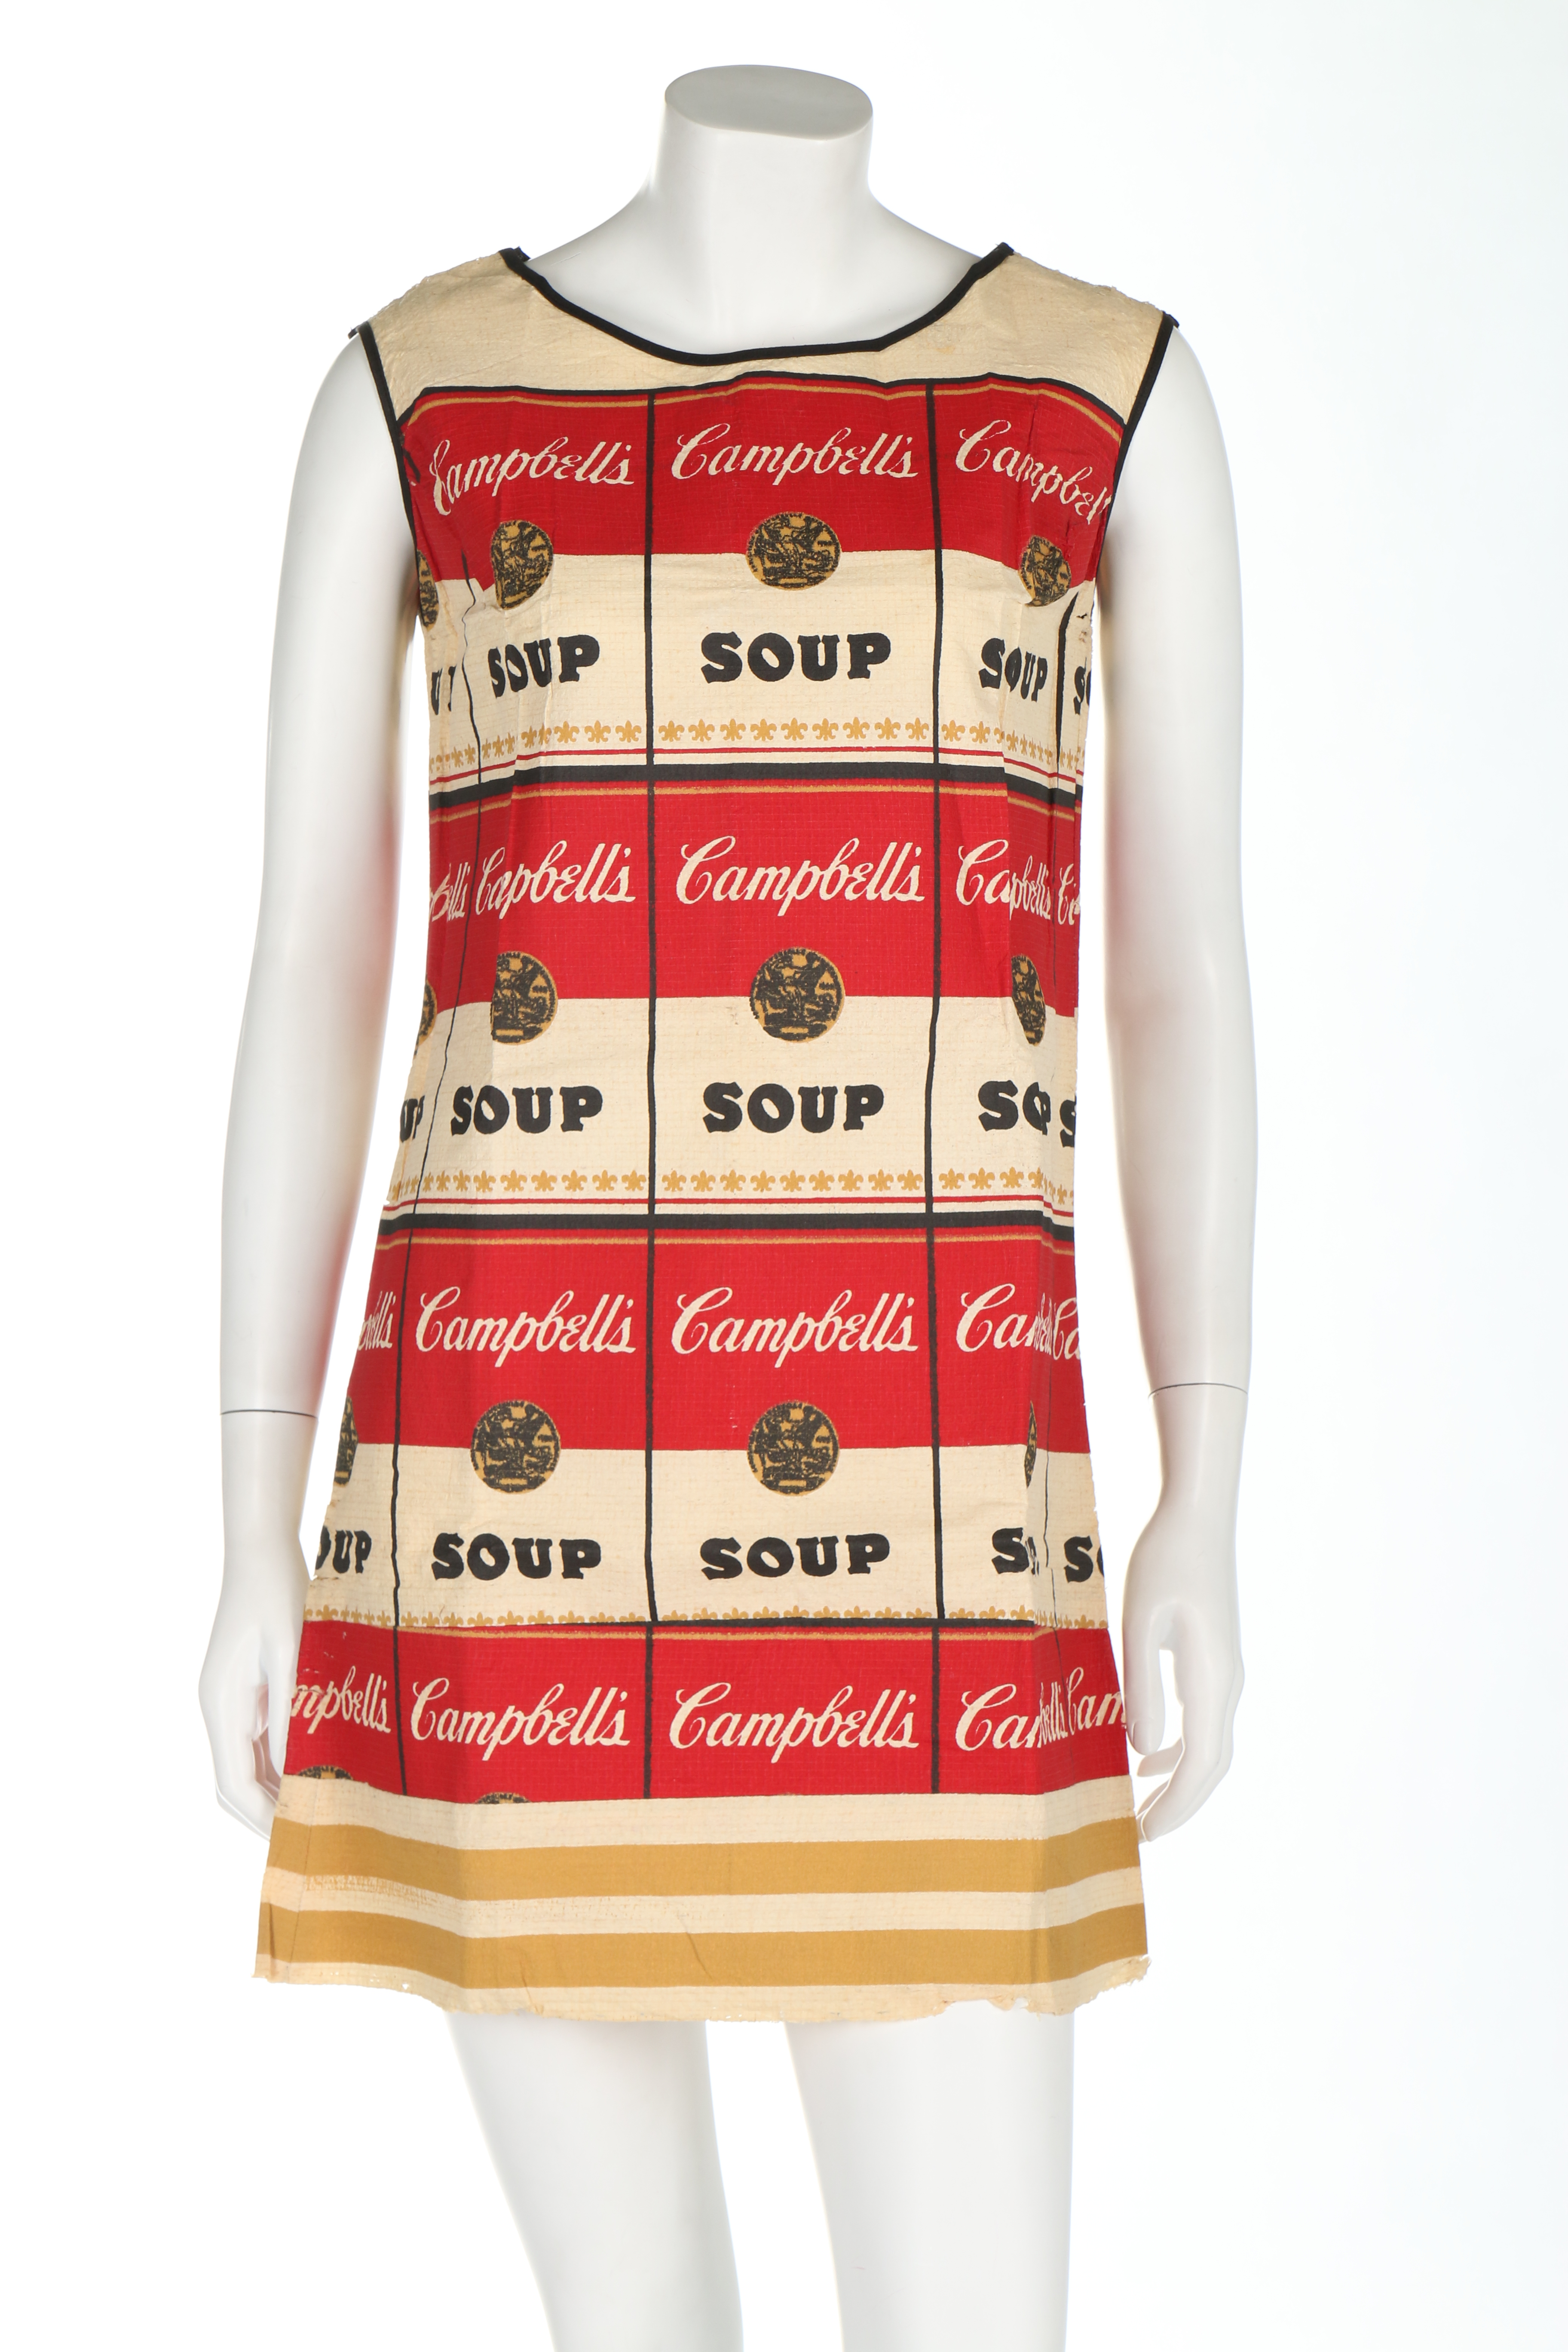 The Souper Dress 1966. Photograph, Kerry Taylor Auctions